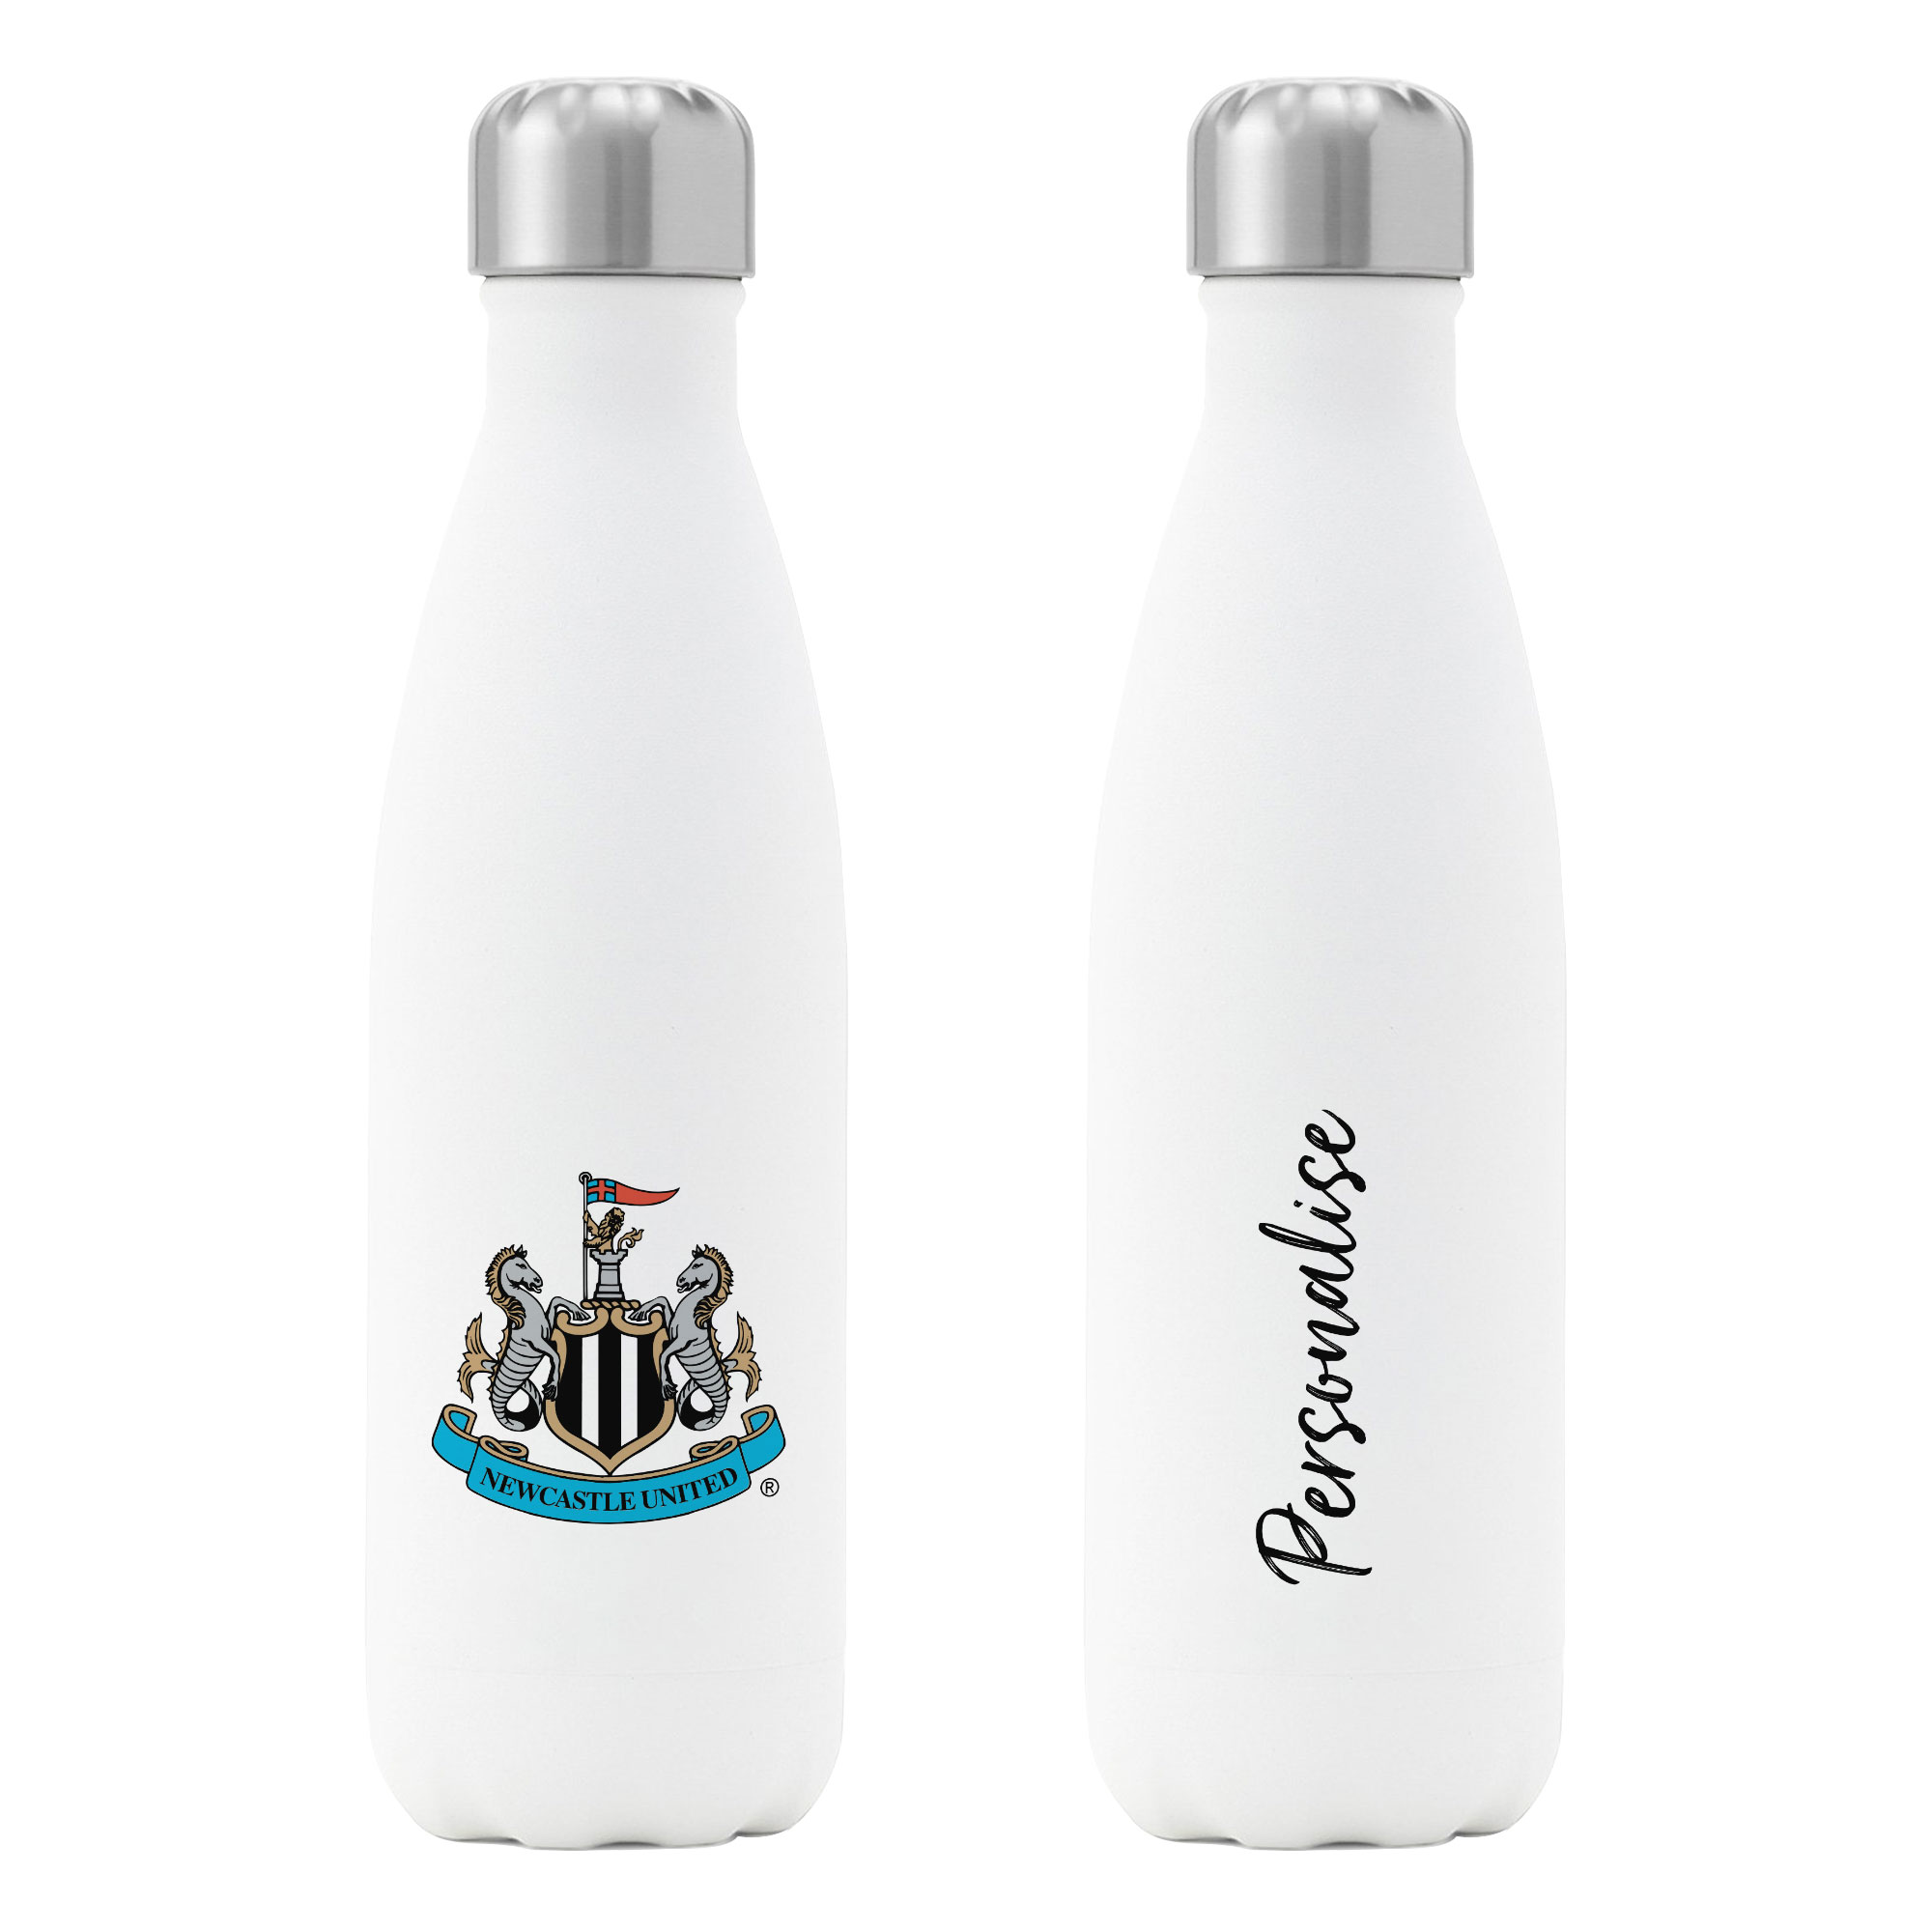 Newcastle United FC Crest Insulated Water Bottle - White